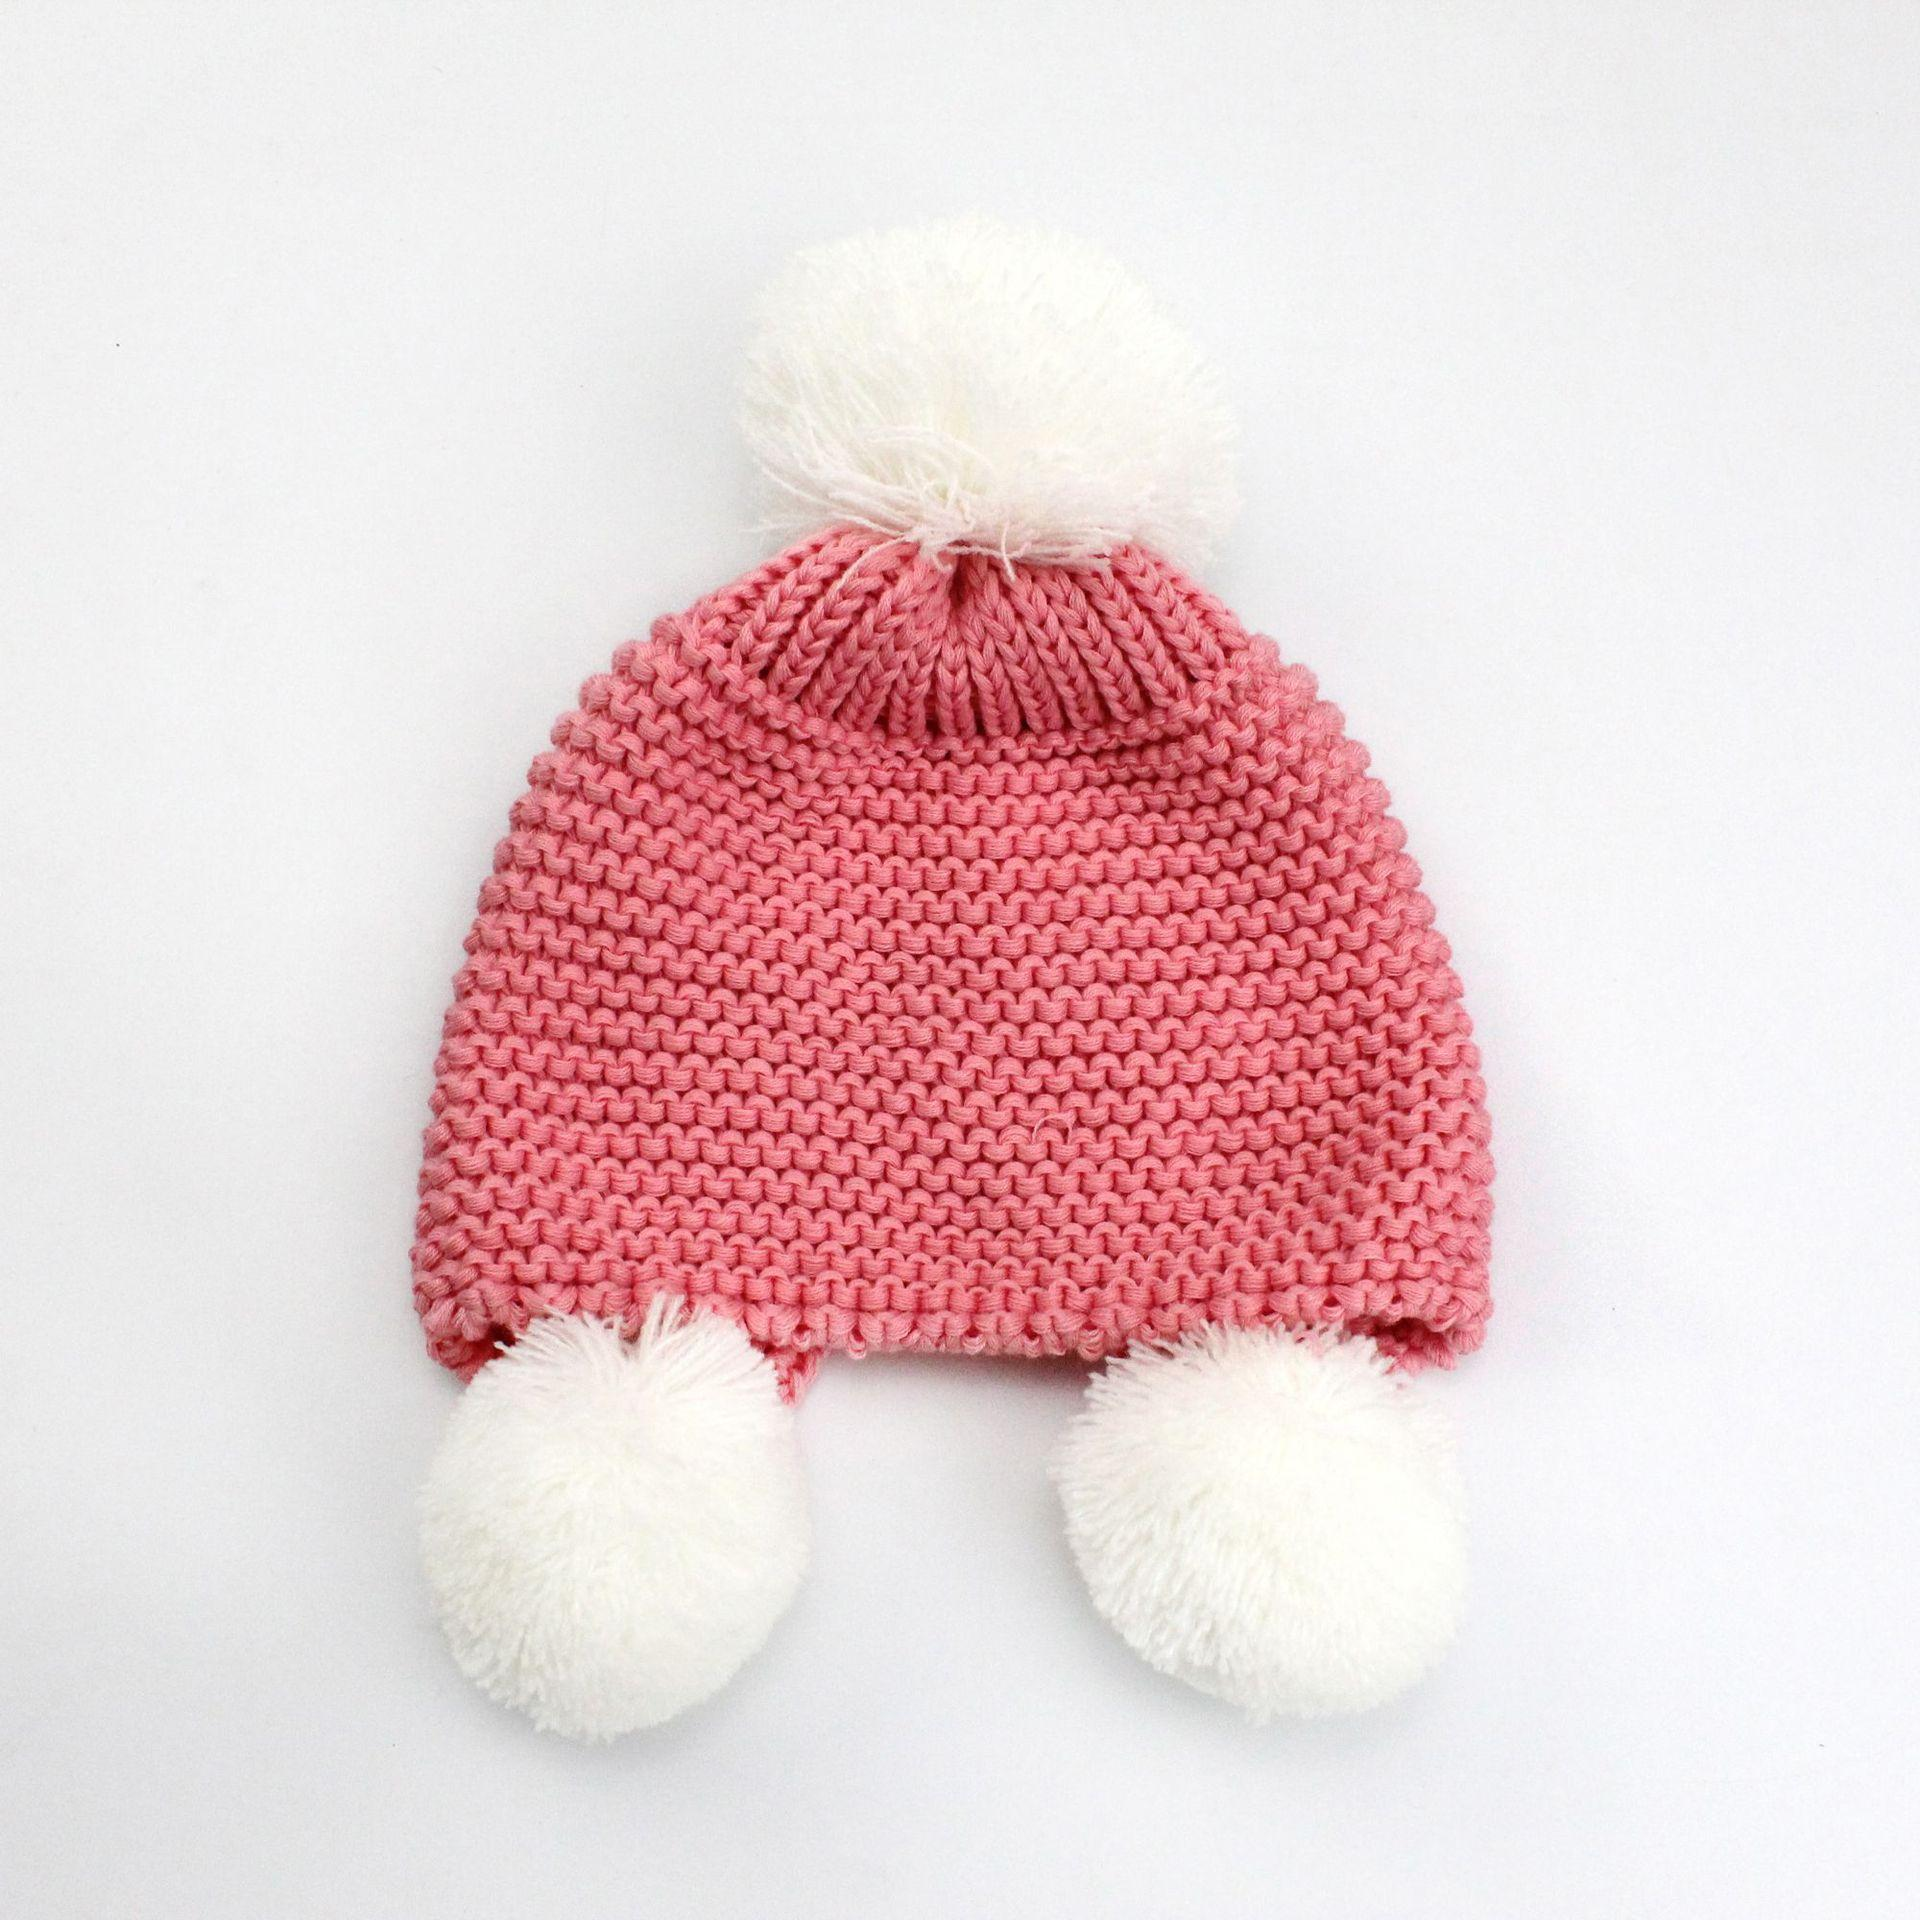 2019 New Autumn And Winter Baby Ear Protector Cotton Warm Knitting Ball Caps  Children Slouchy Head Warmer Baby Hip Hop Snow Caps Gift From Star ant dd635d68b1a